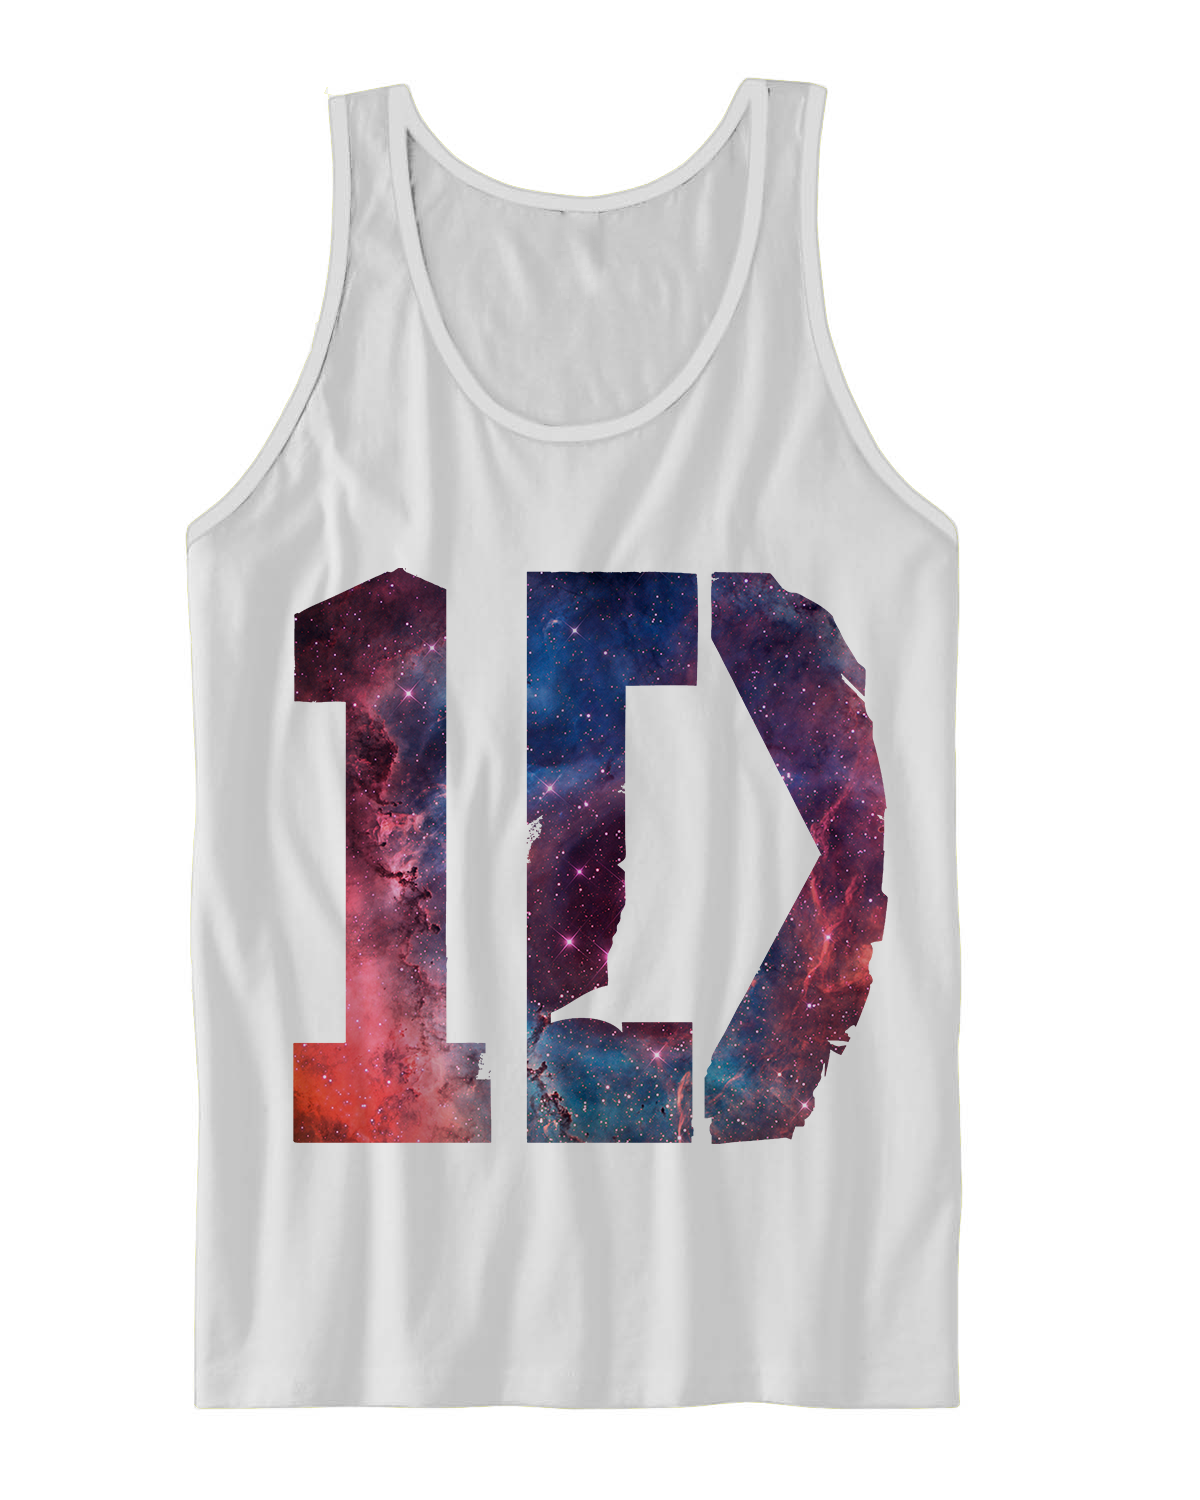 ONE DIRECTION GALAXY TANK TOP 1D SHIRTS ONE DIRECTION SHIRTS ONE ...